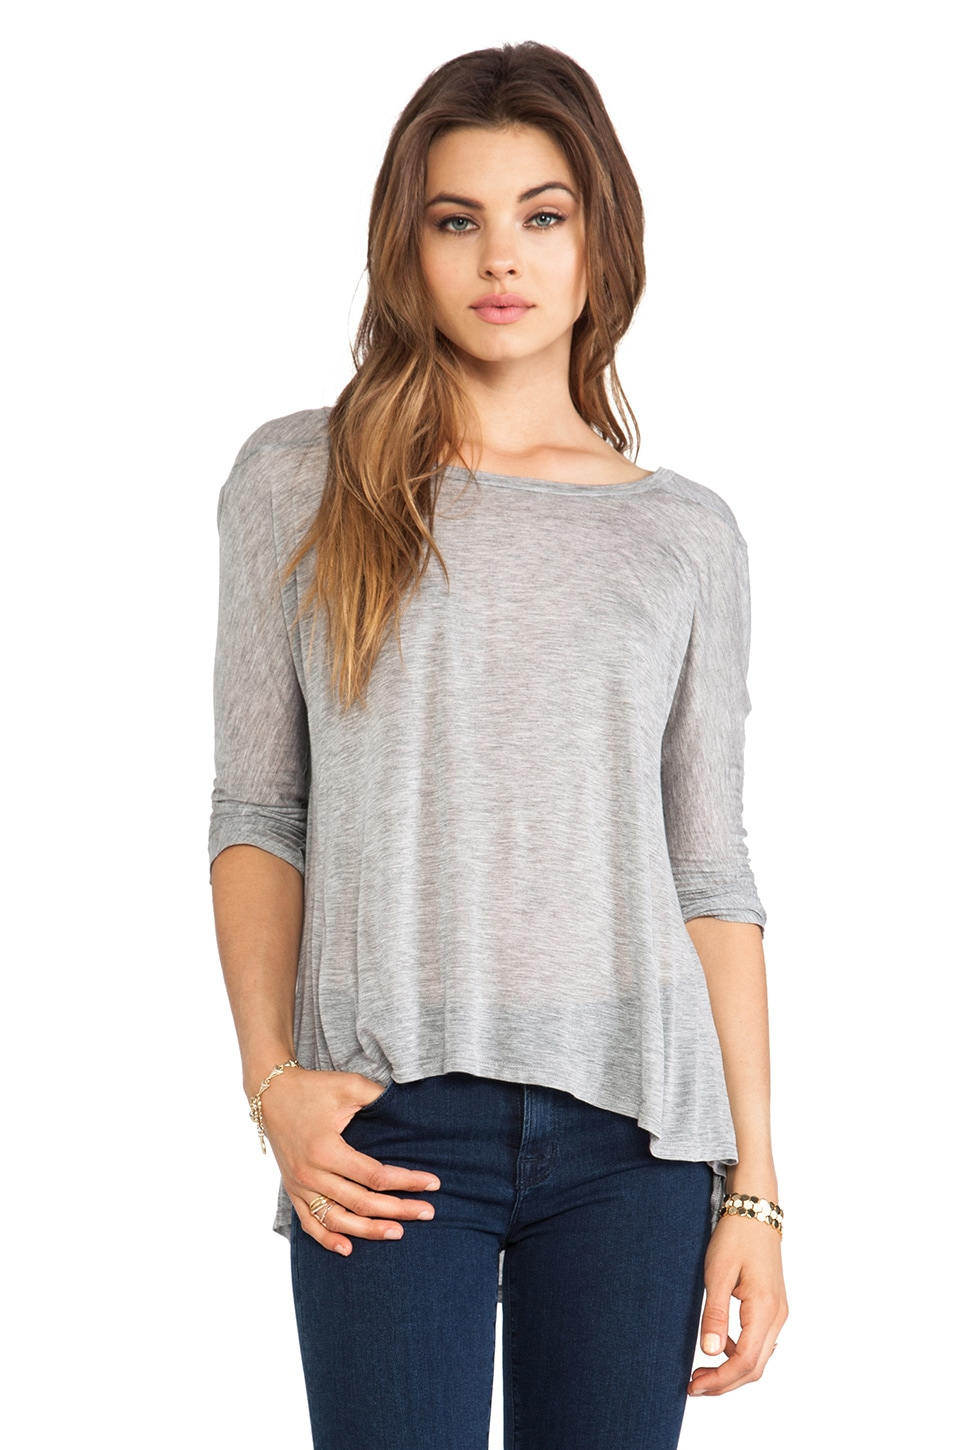 Enza Costa Half Sleeve Drape Top in Heather Grey